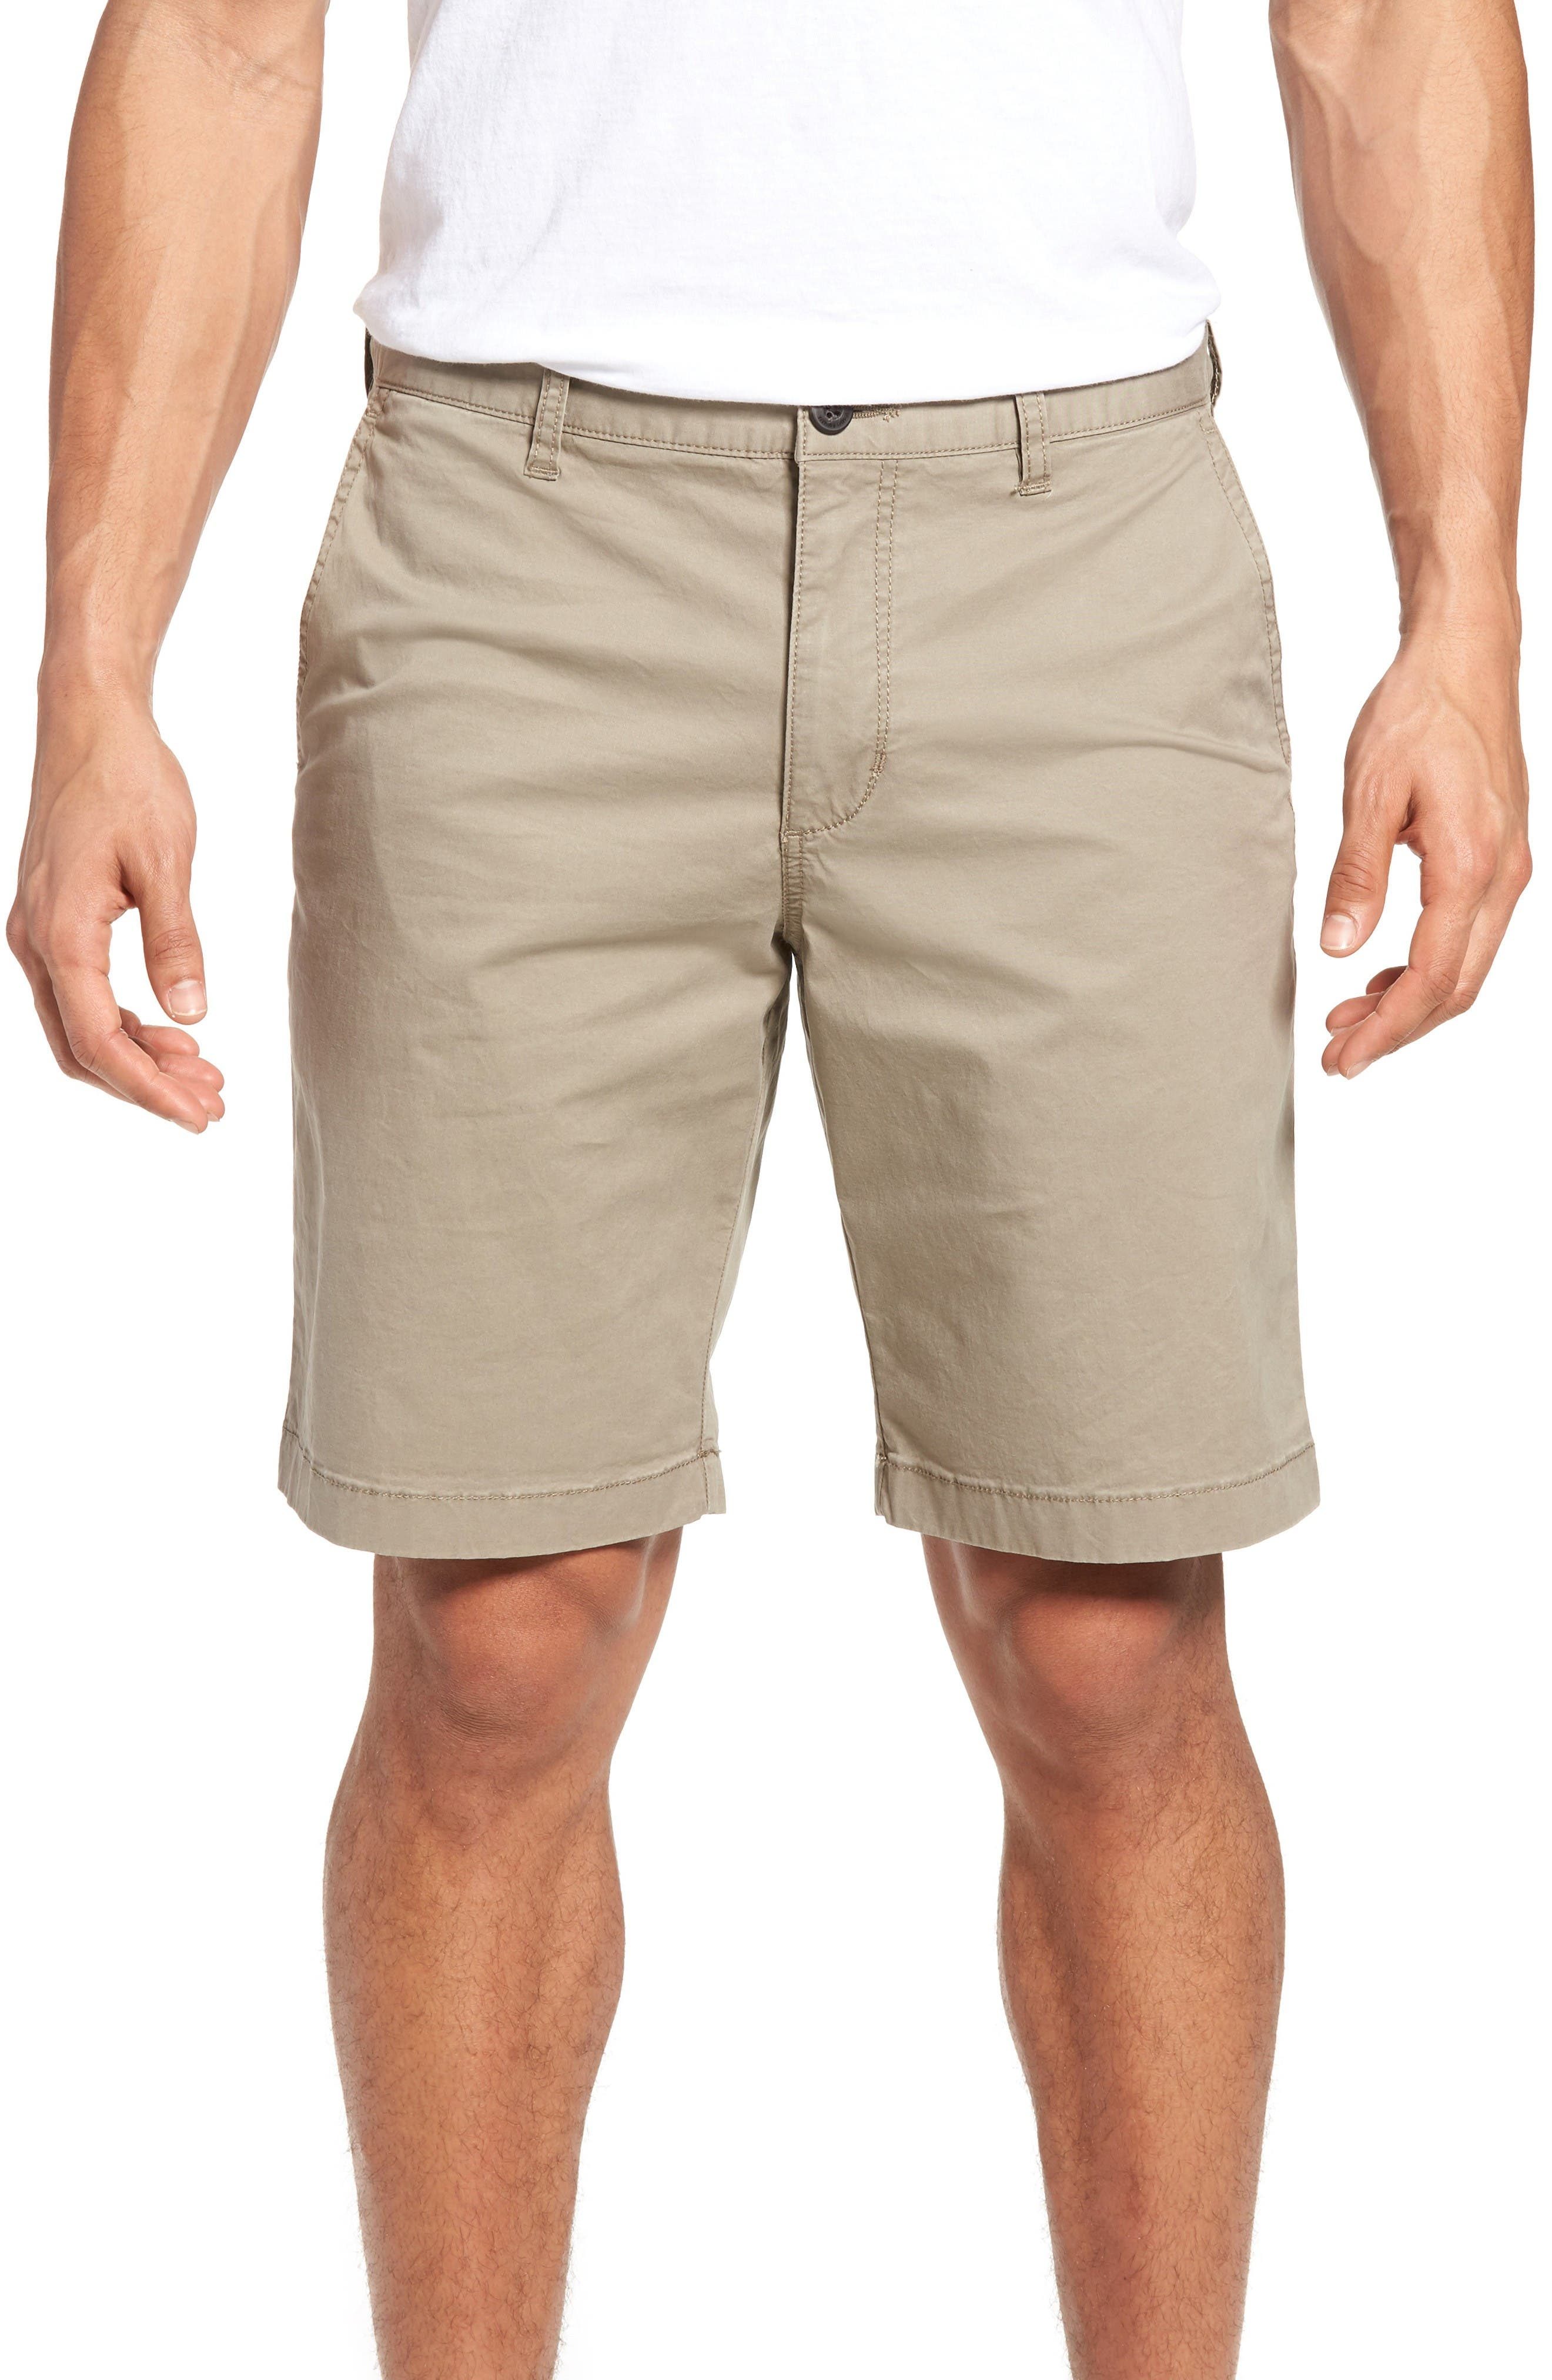 Alternate Image 1 Selected - Tommy Bahama Sail Away Shorts